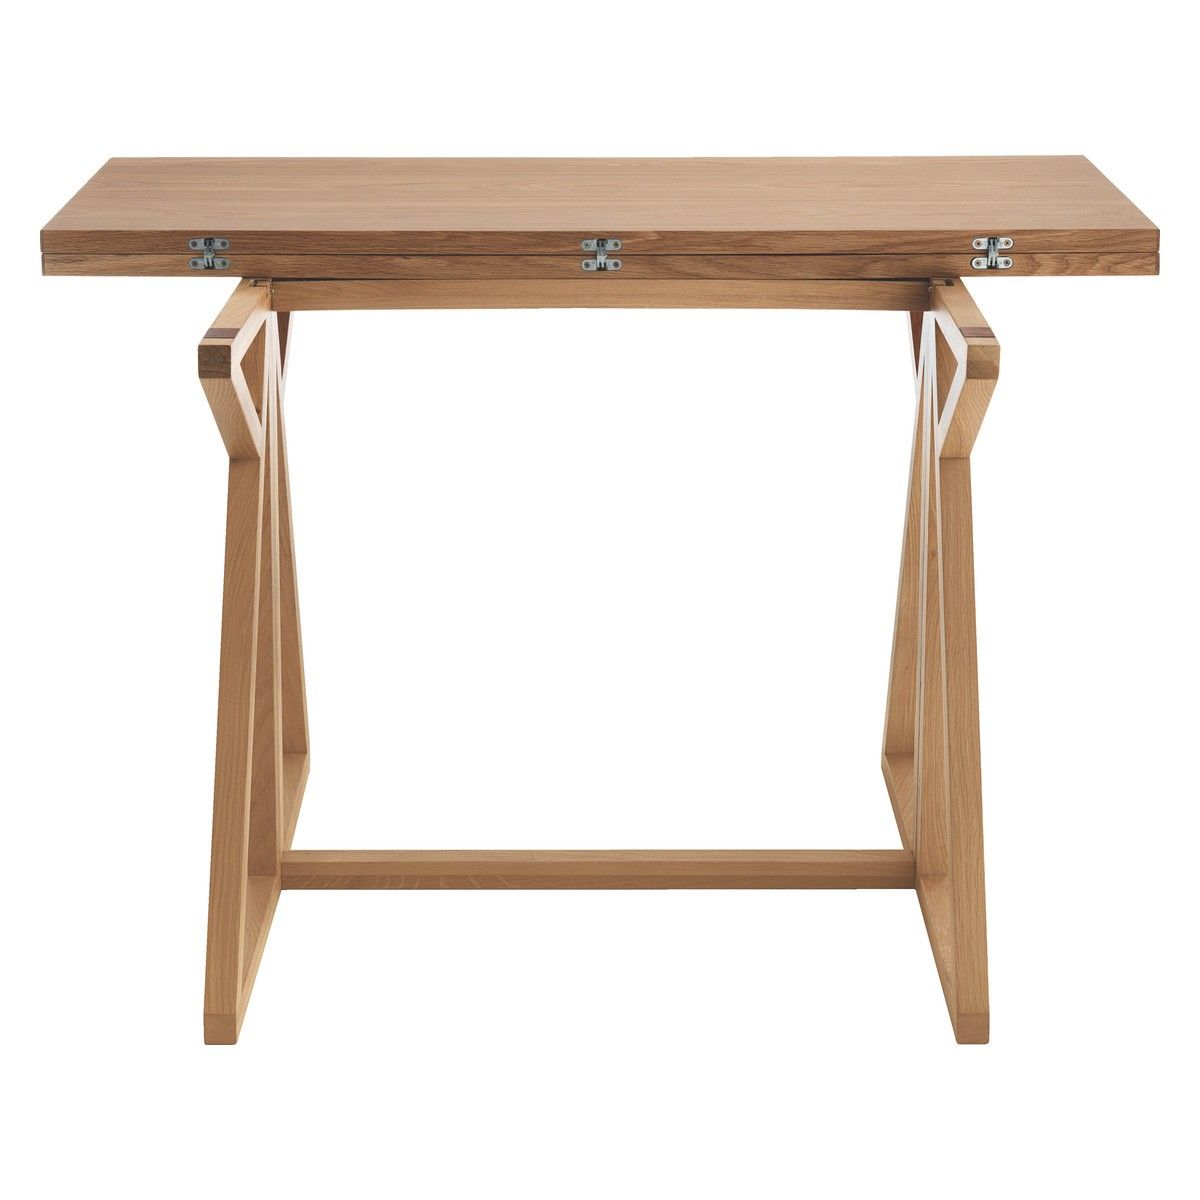 HEATH 2 4 Seat Oak Folding Dining Table | Buy Now At Habitat UK